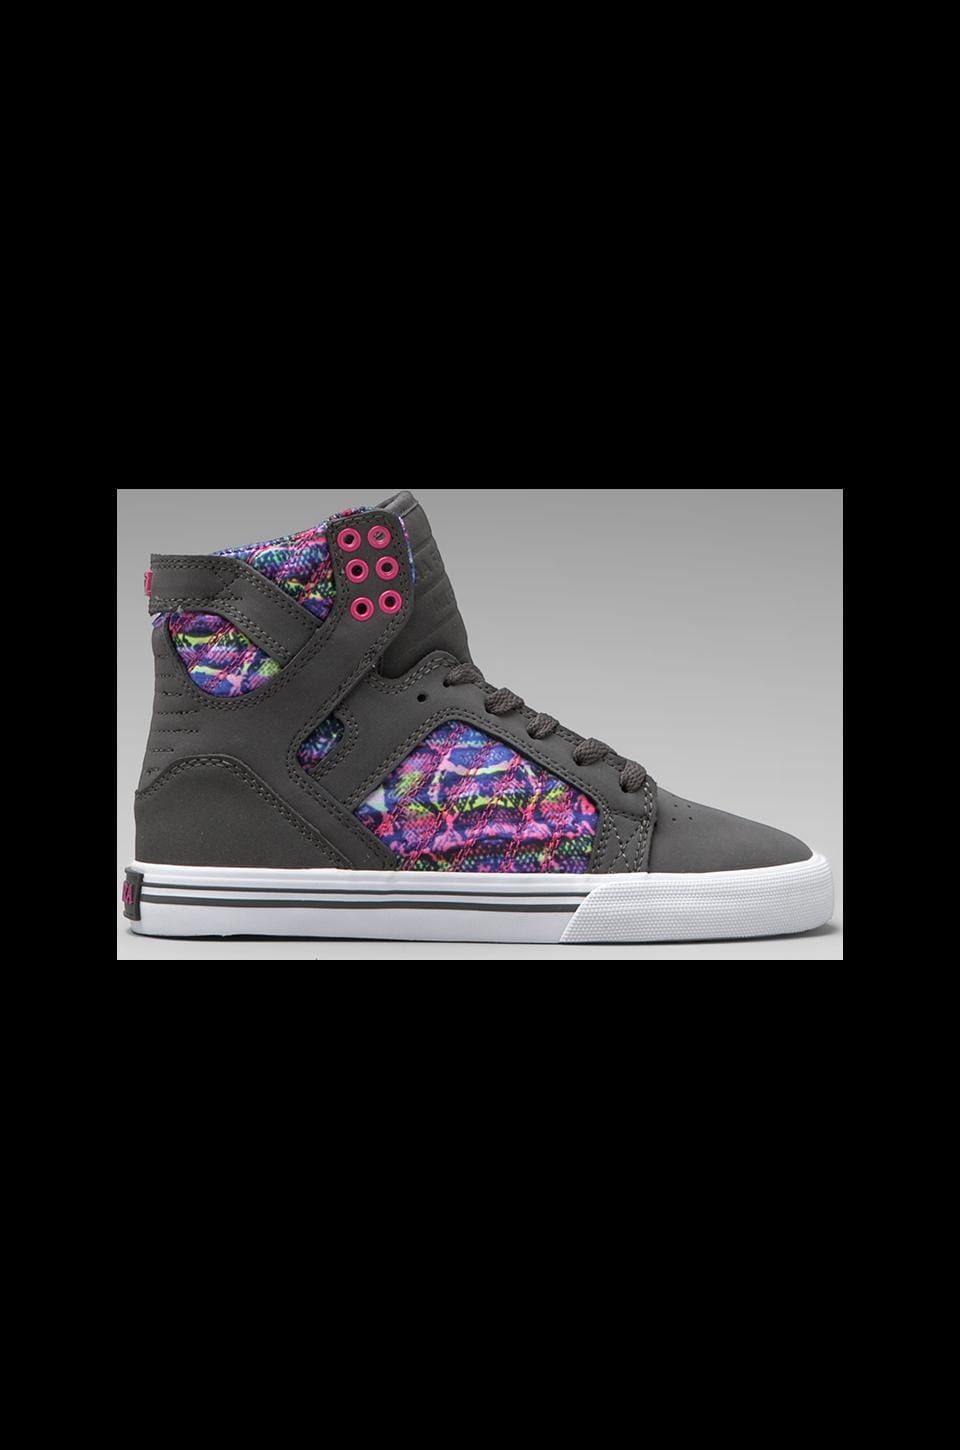 Supra Skytop Sneaker in Charcoal/Pink-White